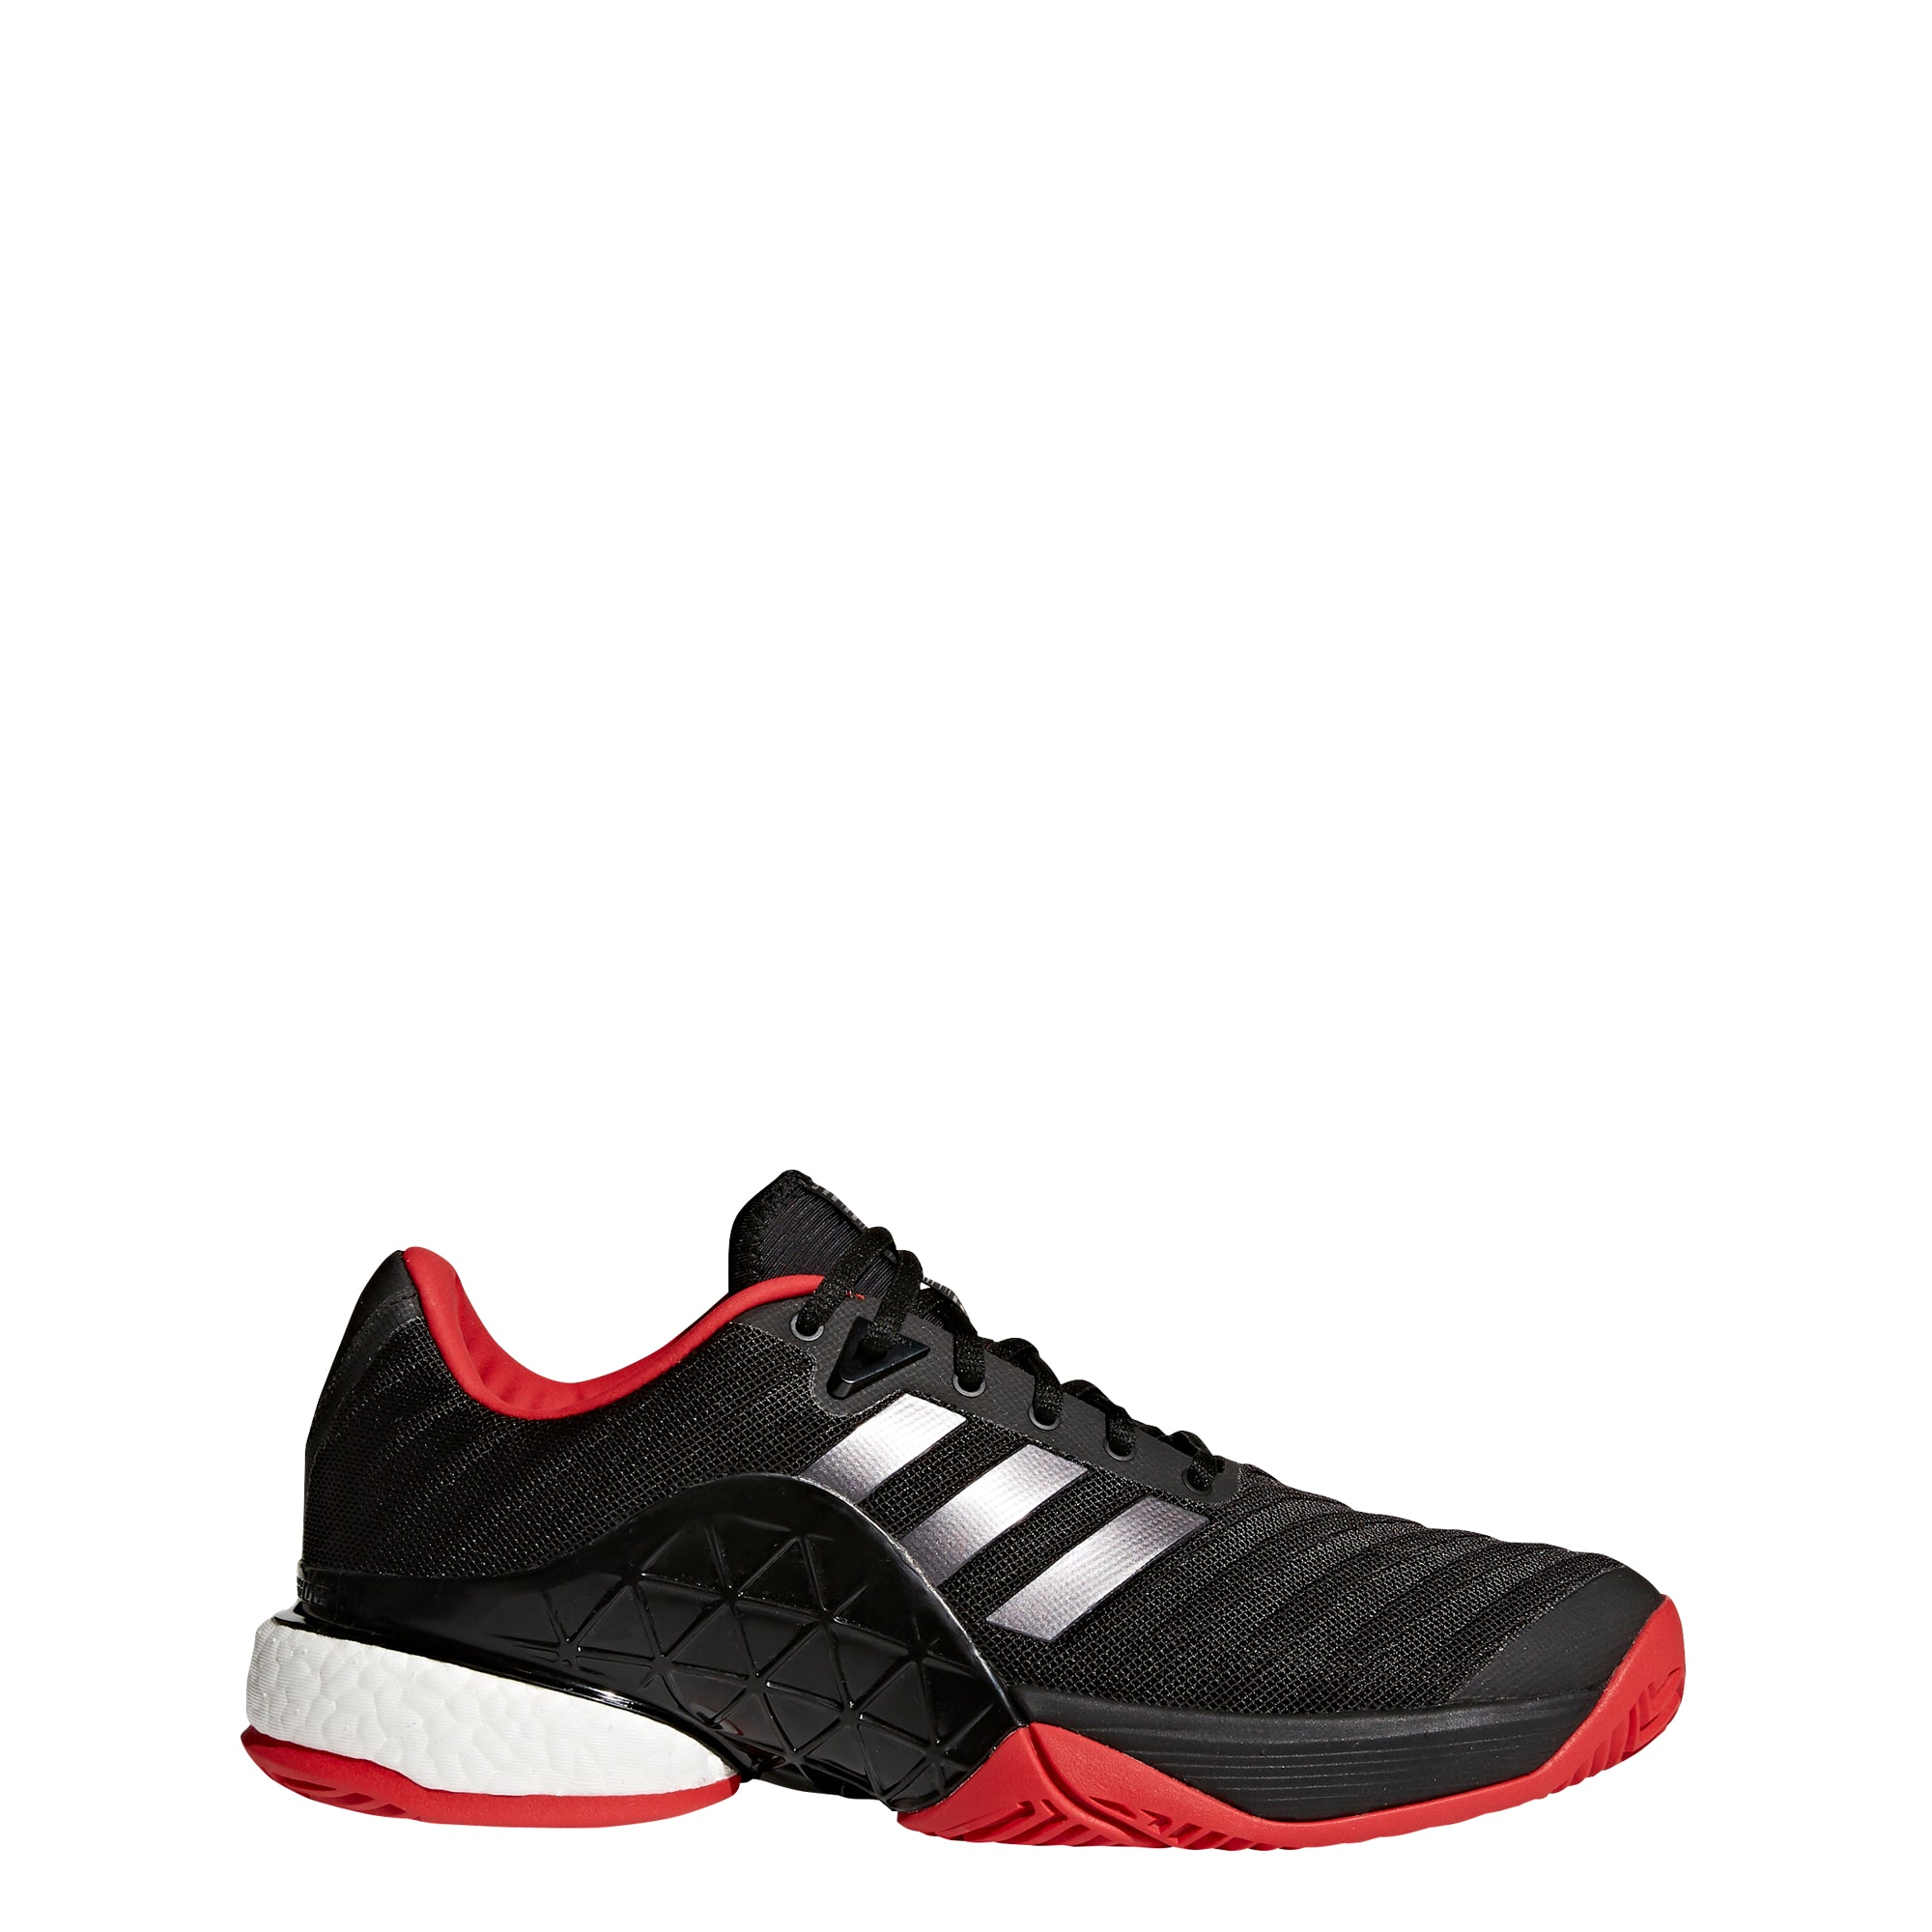 the best attitude 784d4 538d0 Buy adidas Men Barricade 2018 Boost Tennis Shoes, Black Red Online in  Singapore   Royal Sporting House